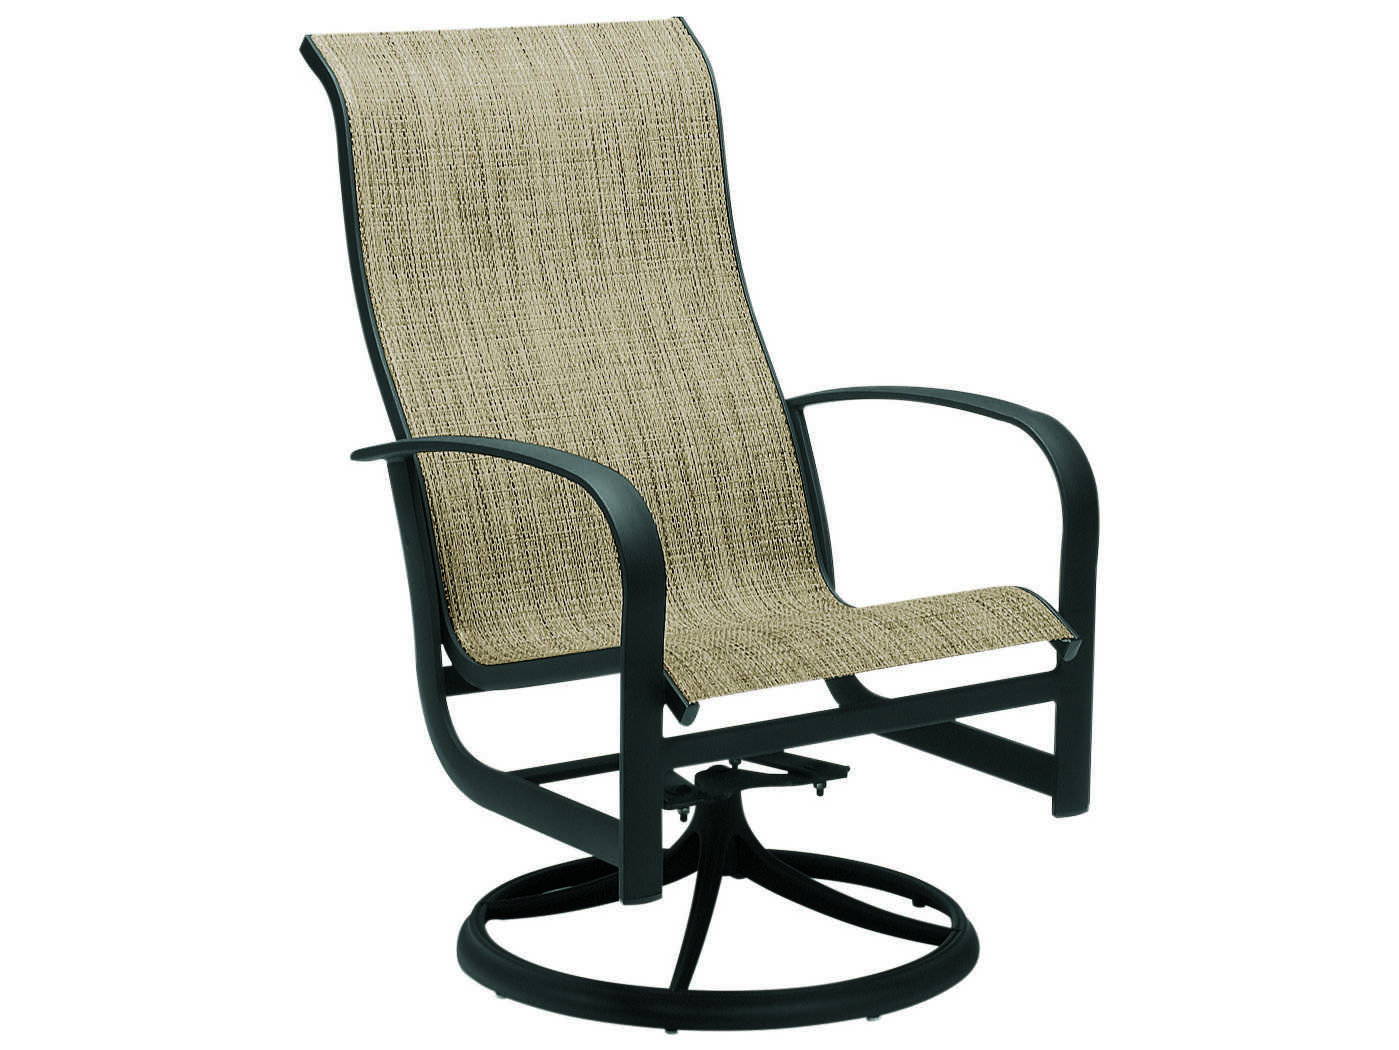 High Back Patio Furniture: Woodard Fremont Sling Aluminum High Back Swivel Rocker